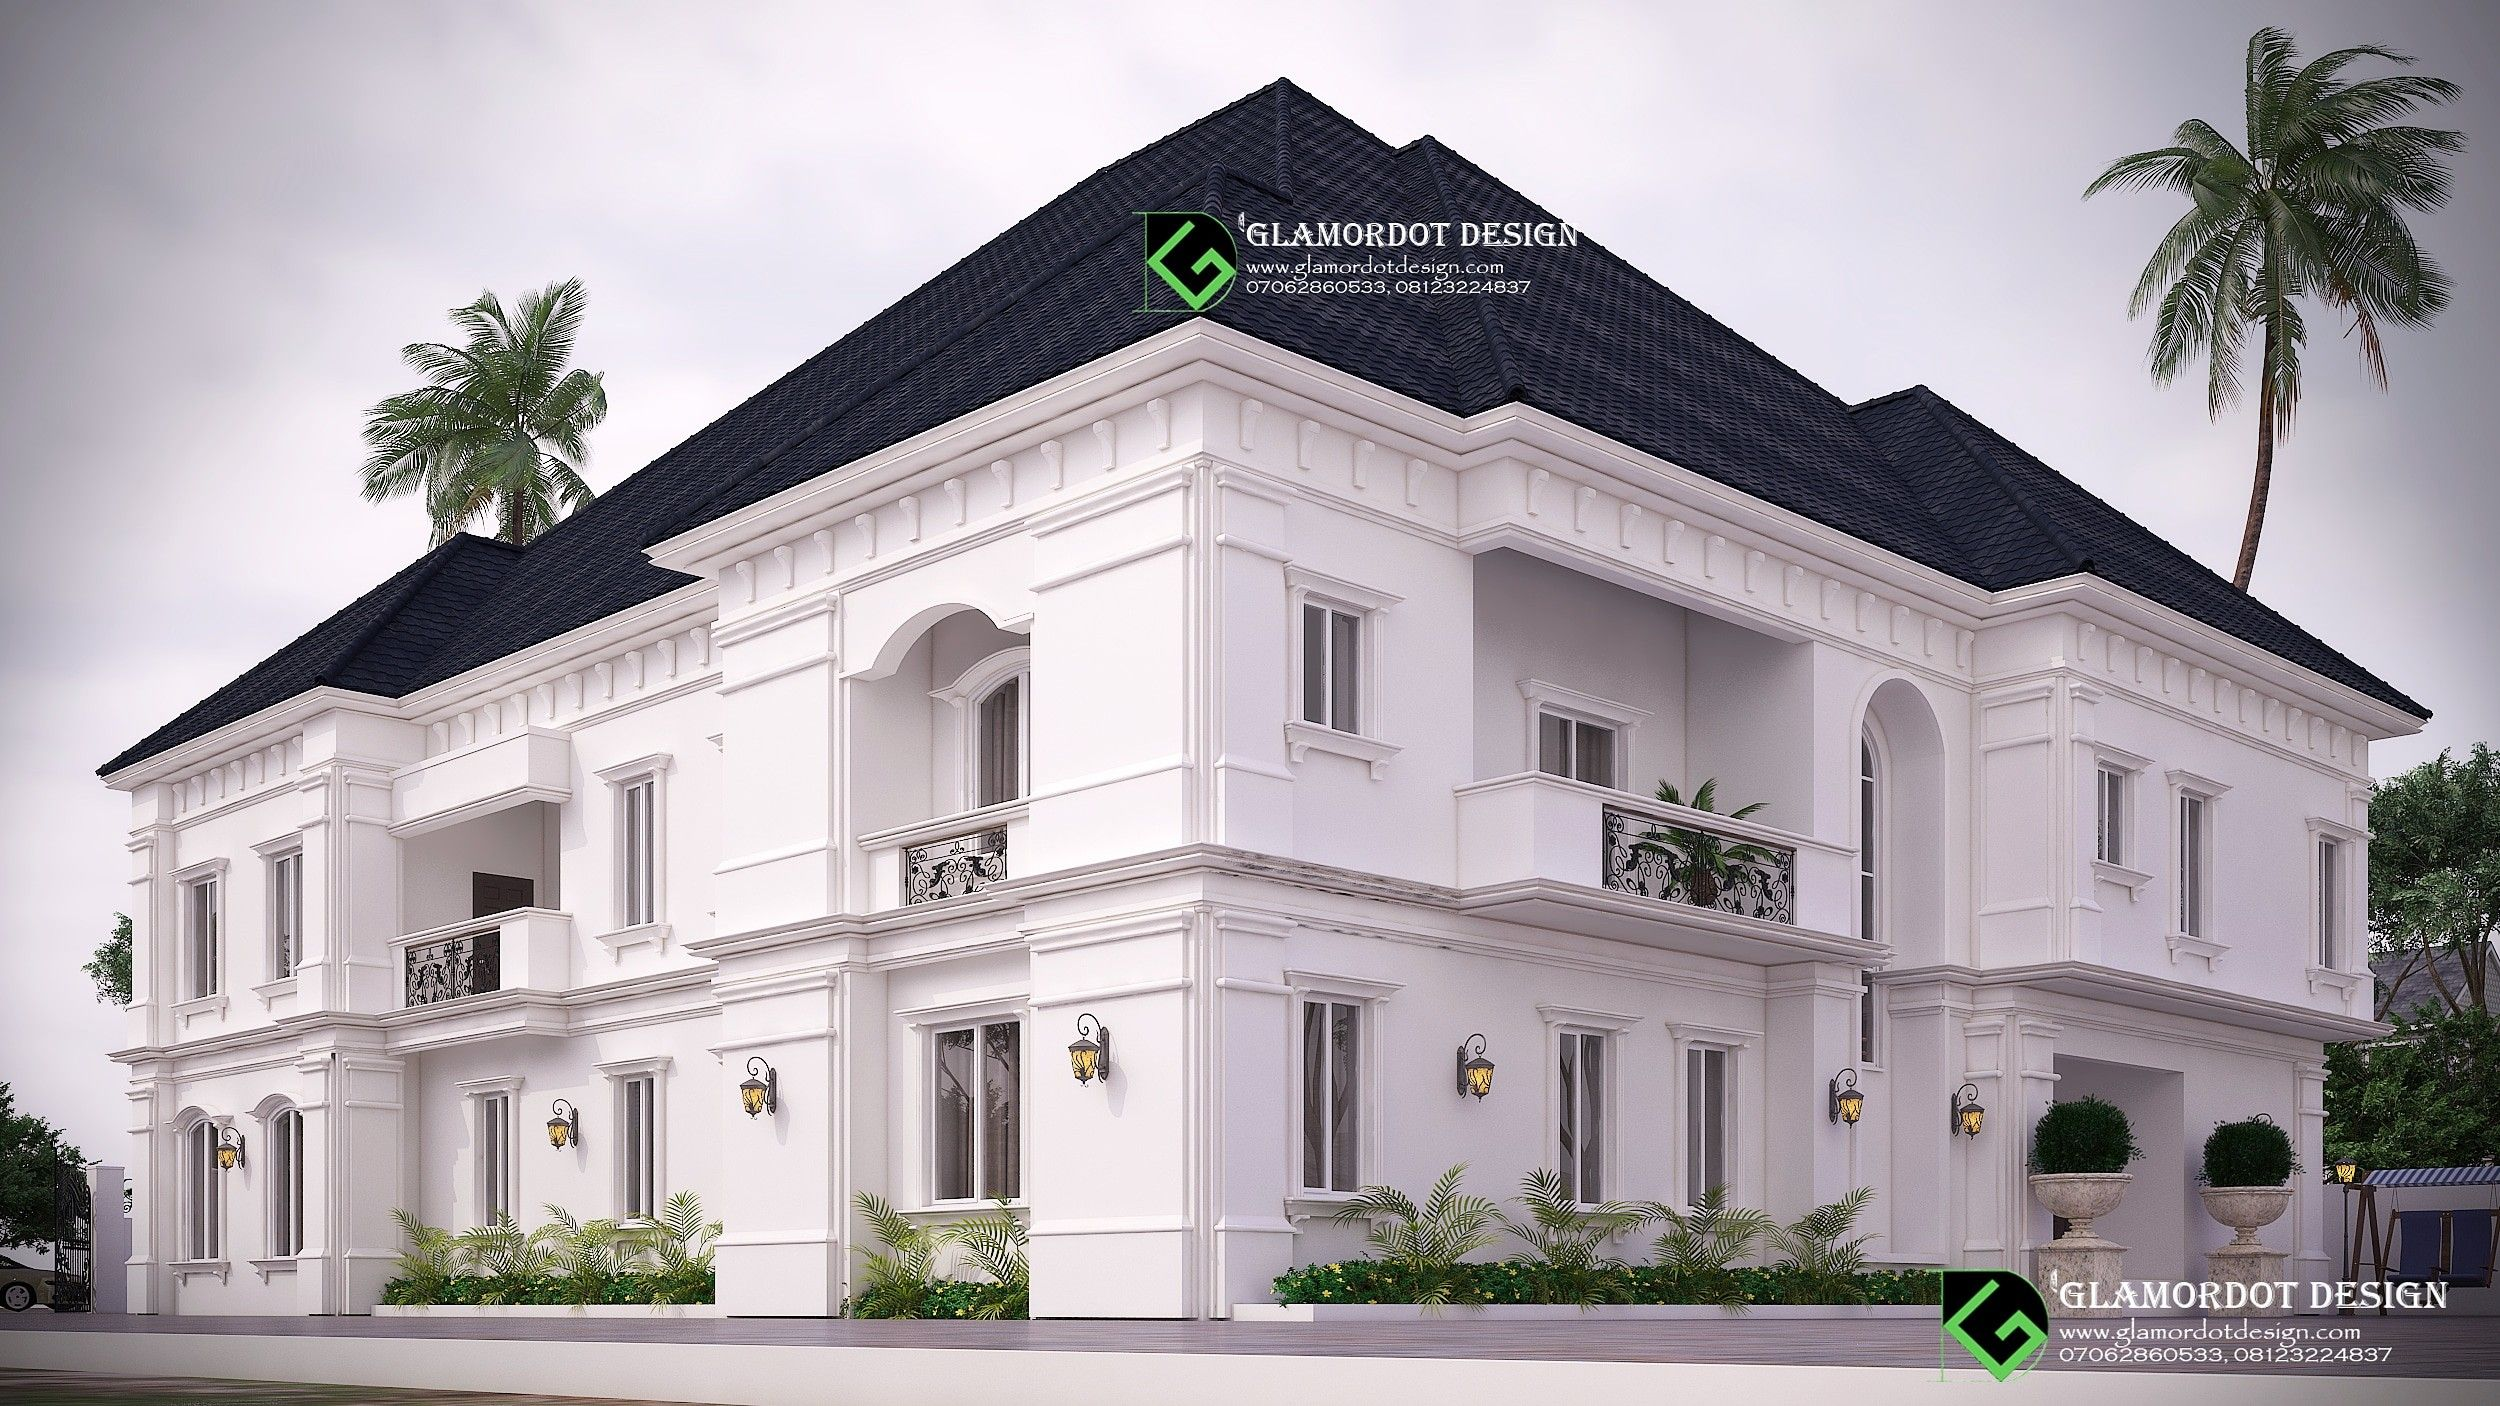 Architectural Design Of A Proposed 5 Bedroom Duplex Design Duplex Design Mansion Designs Architecture Design